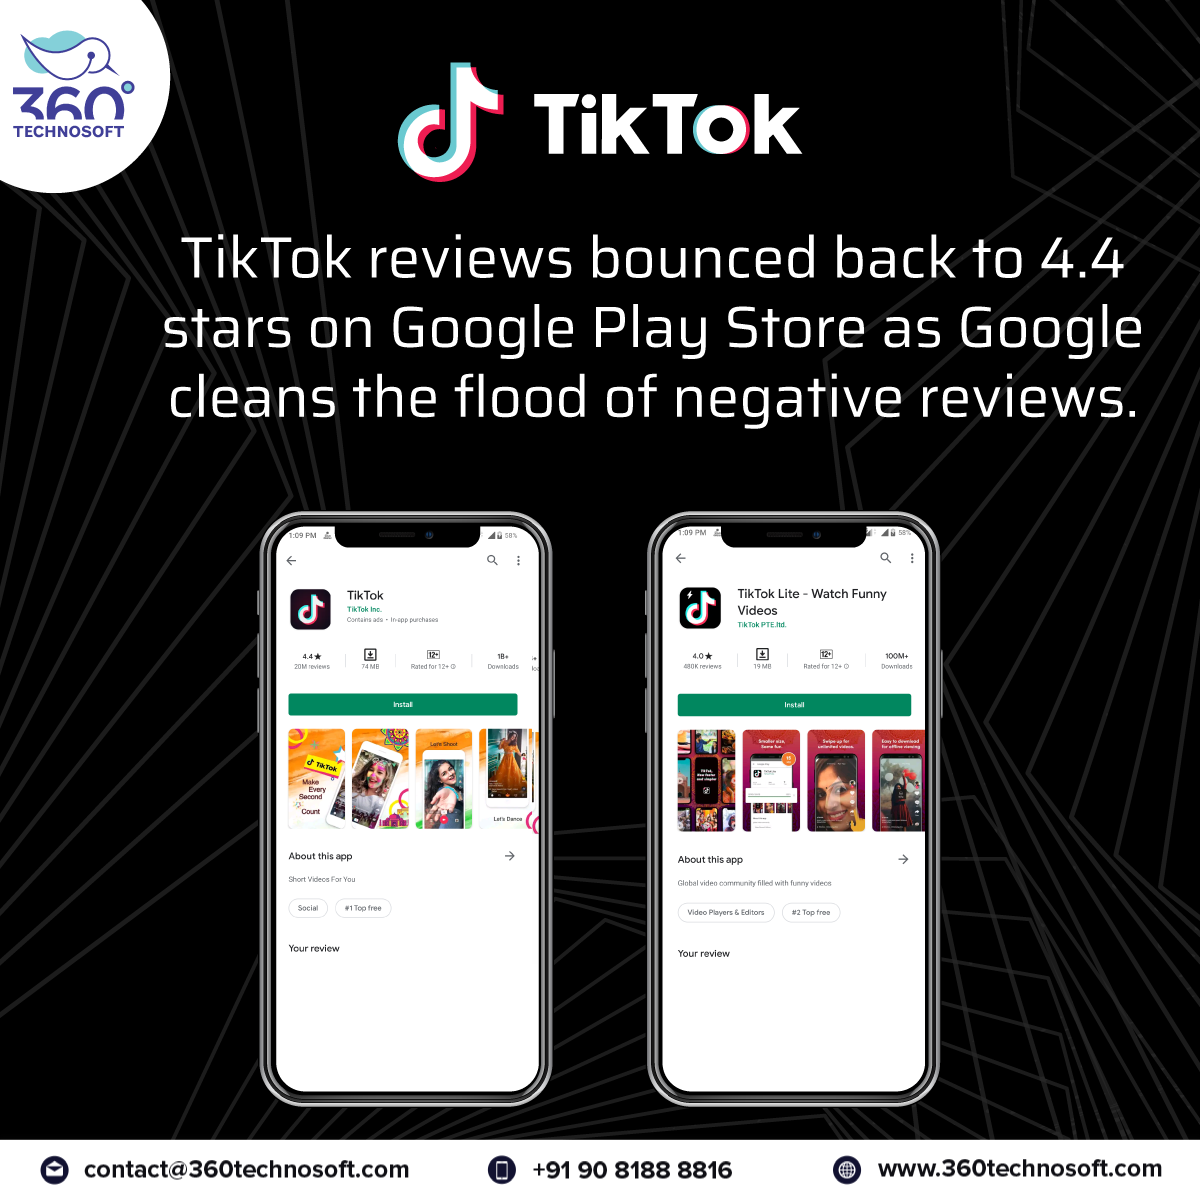 Tiktok Has Been On A Seesaw These Days The Ratings Dropped To 1 4 Stars And Now It Is Mobile App Development Mobile App Development Companies App Development